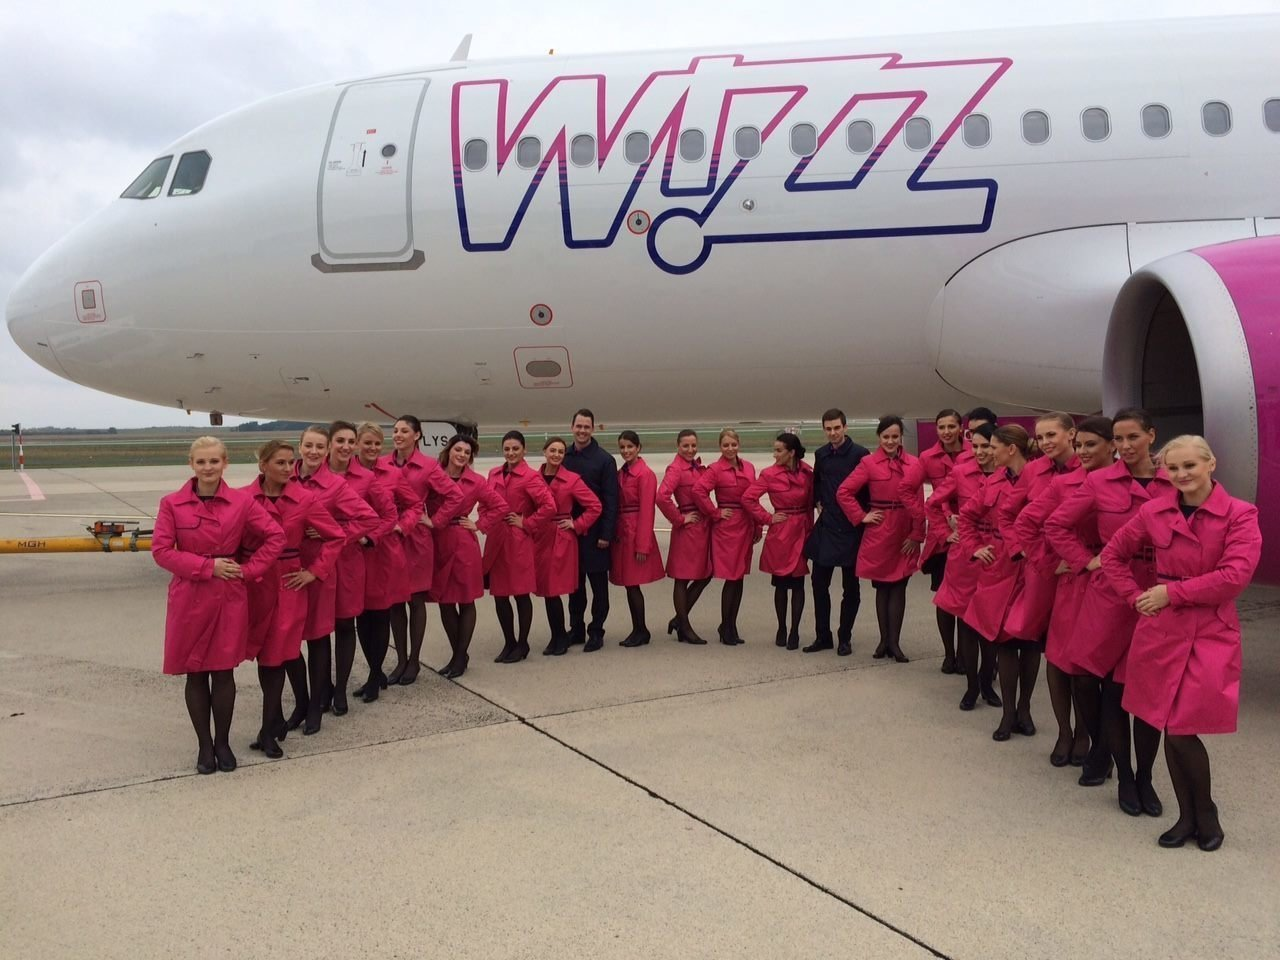 Hungarian Wizz Air officially beat Ryanair in the war of low-cost airlines